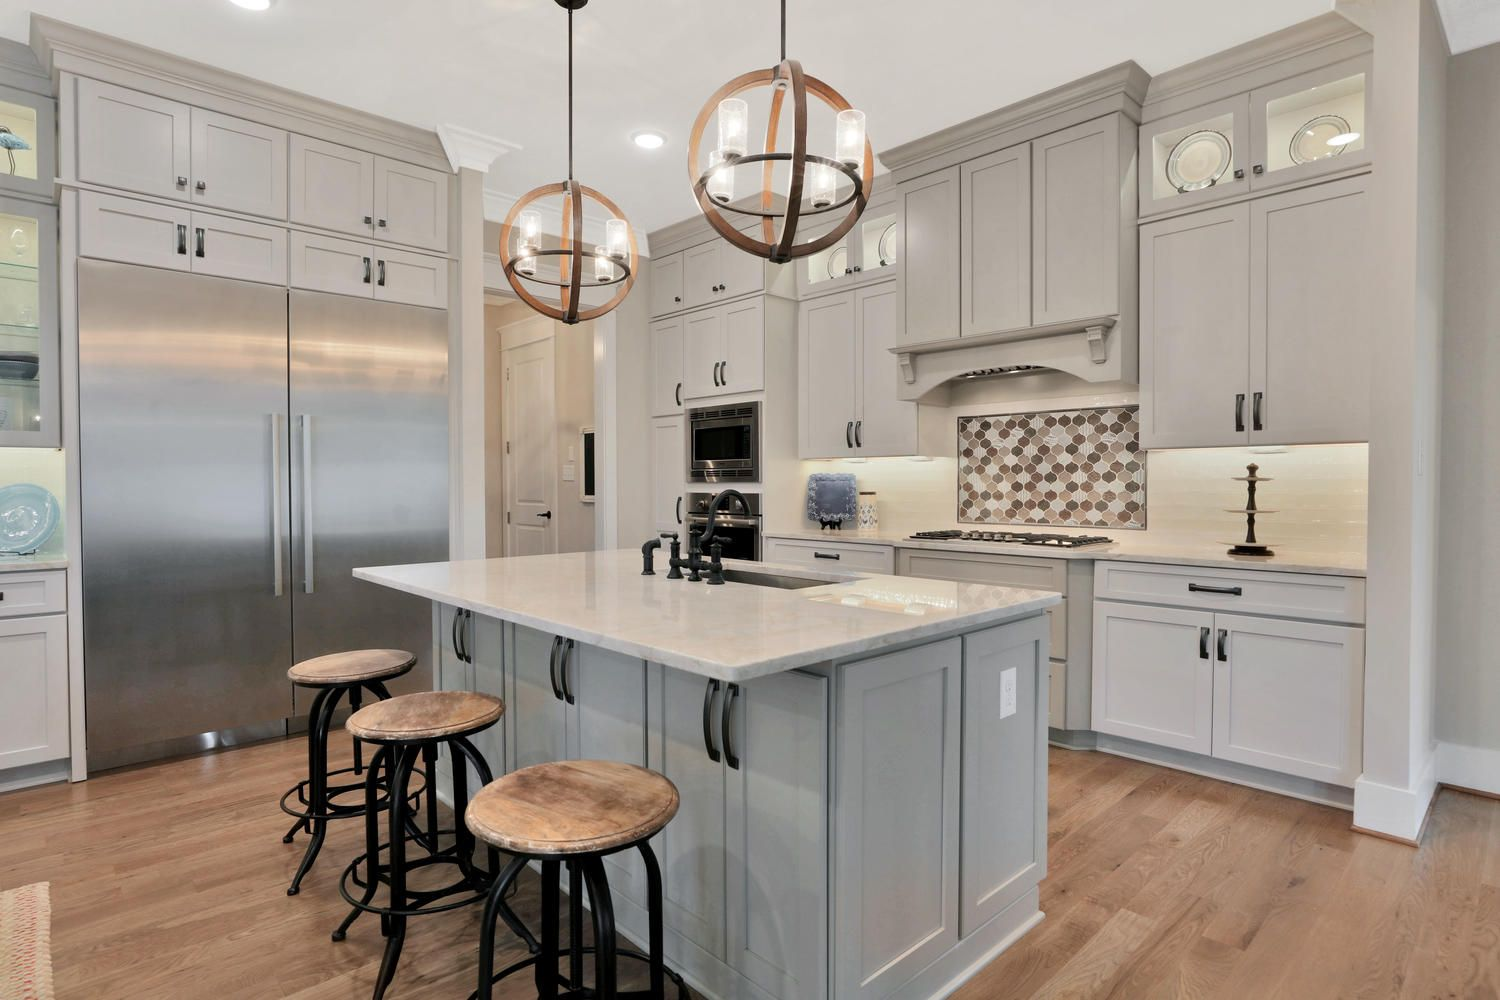 Oyster Color Cabinets Kitchen Tile Kitchen Inspirations Kitchen Design Kitchen Layout